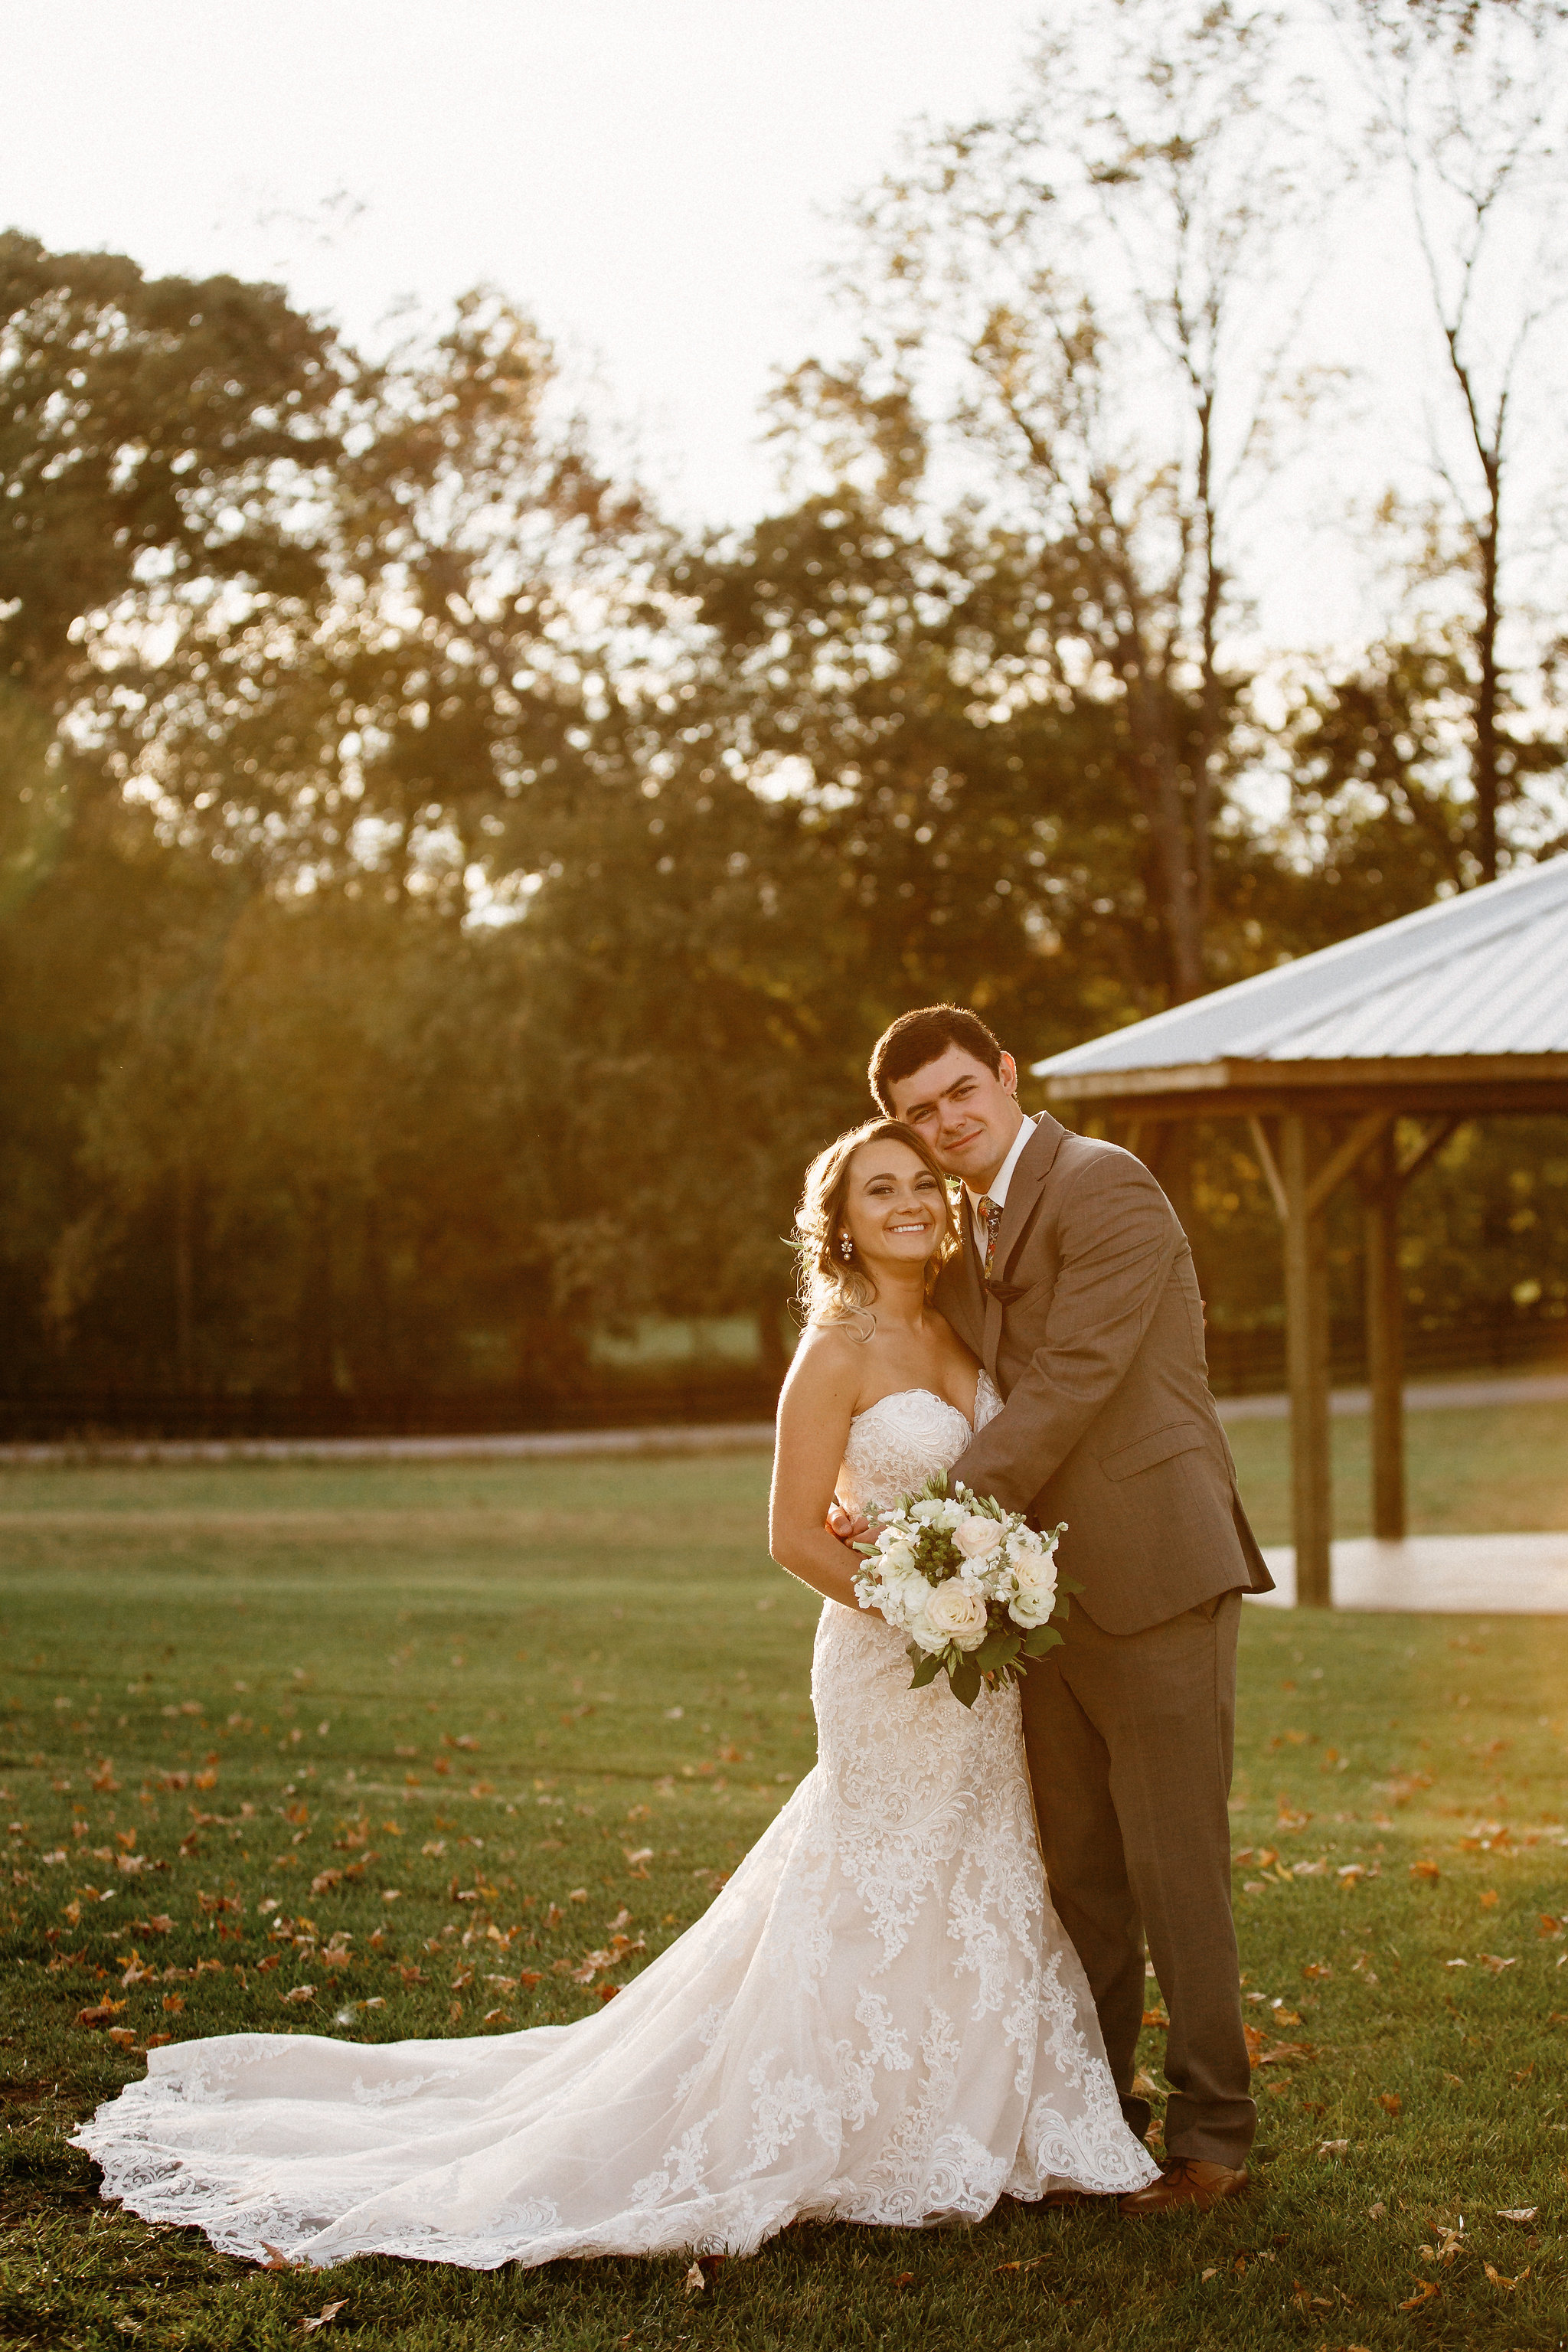 Ashley&NathanMarried2017-11-10at19.26.49PM2.jpg